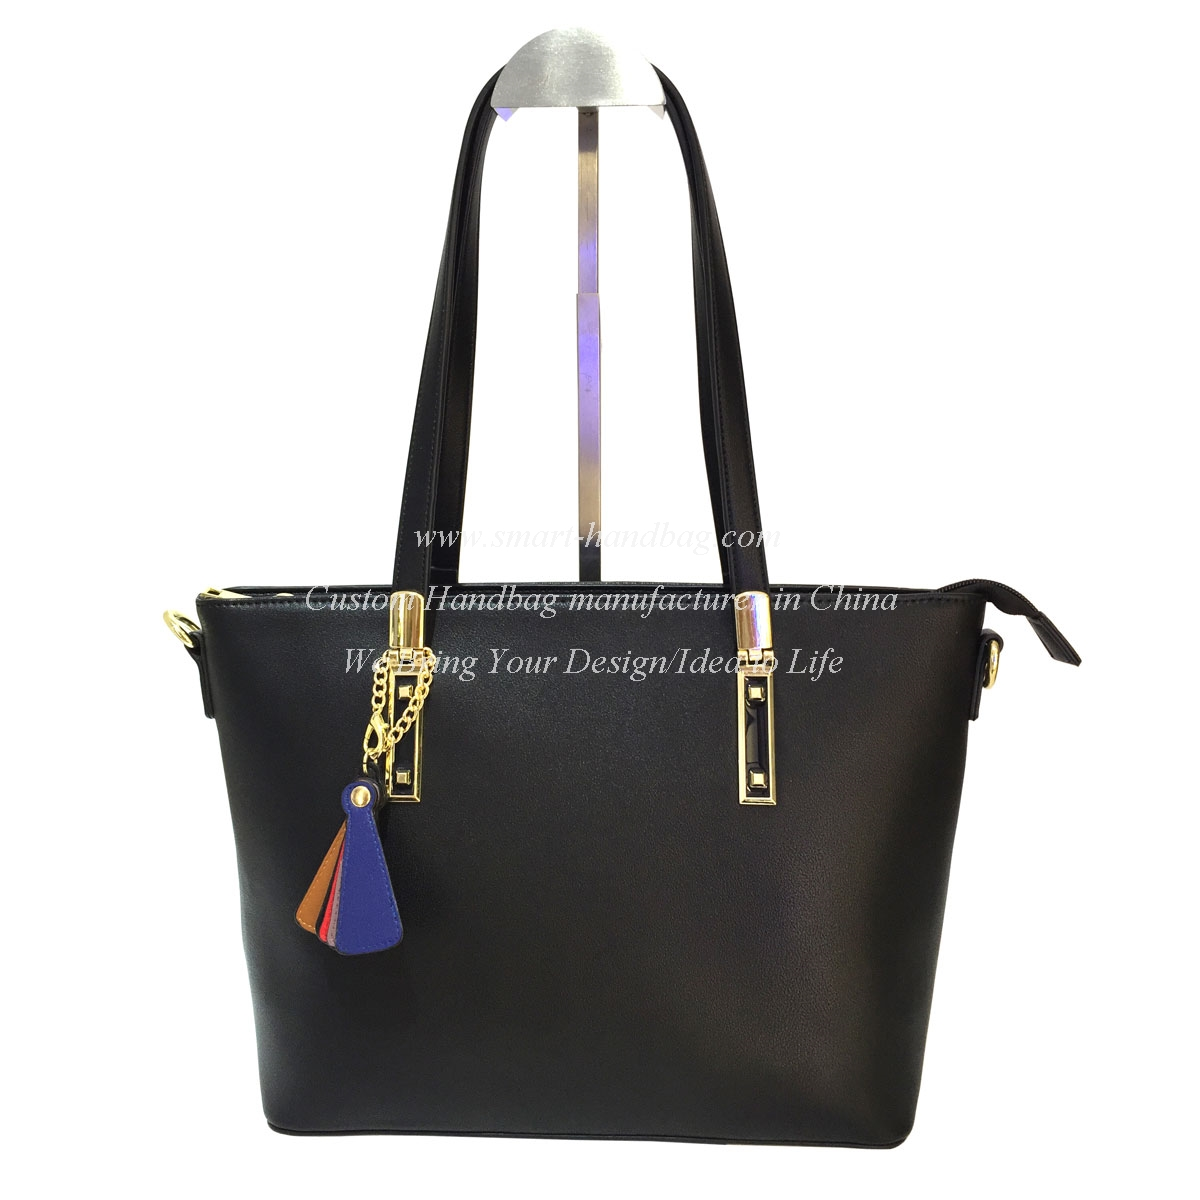 European Style Tote with Colorful Hanger